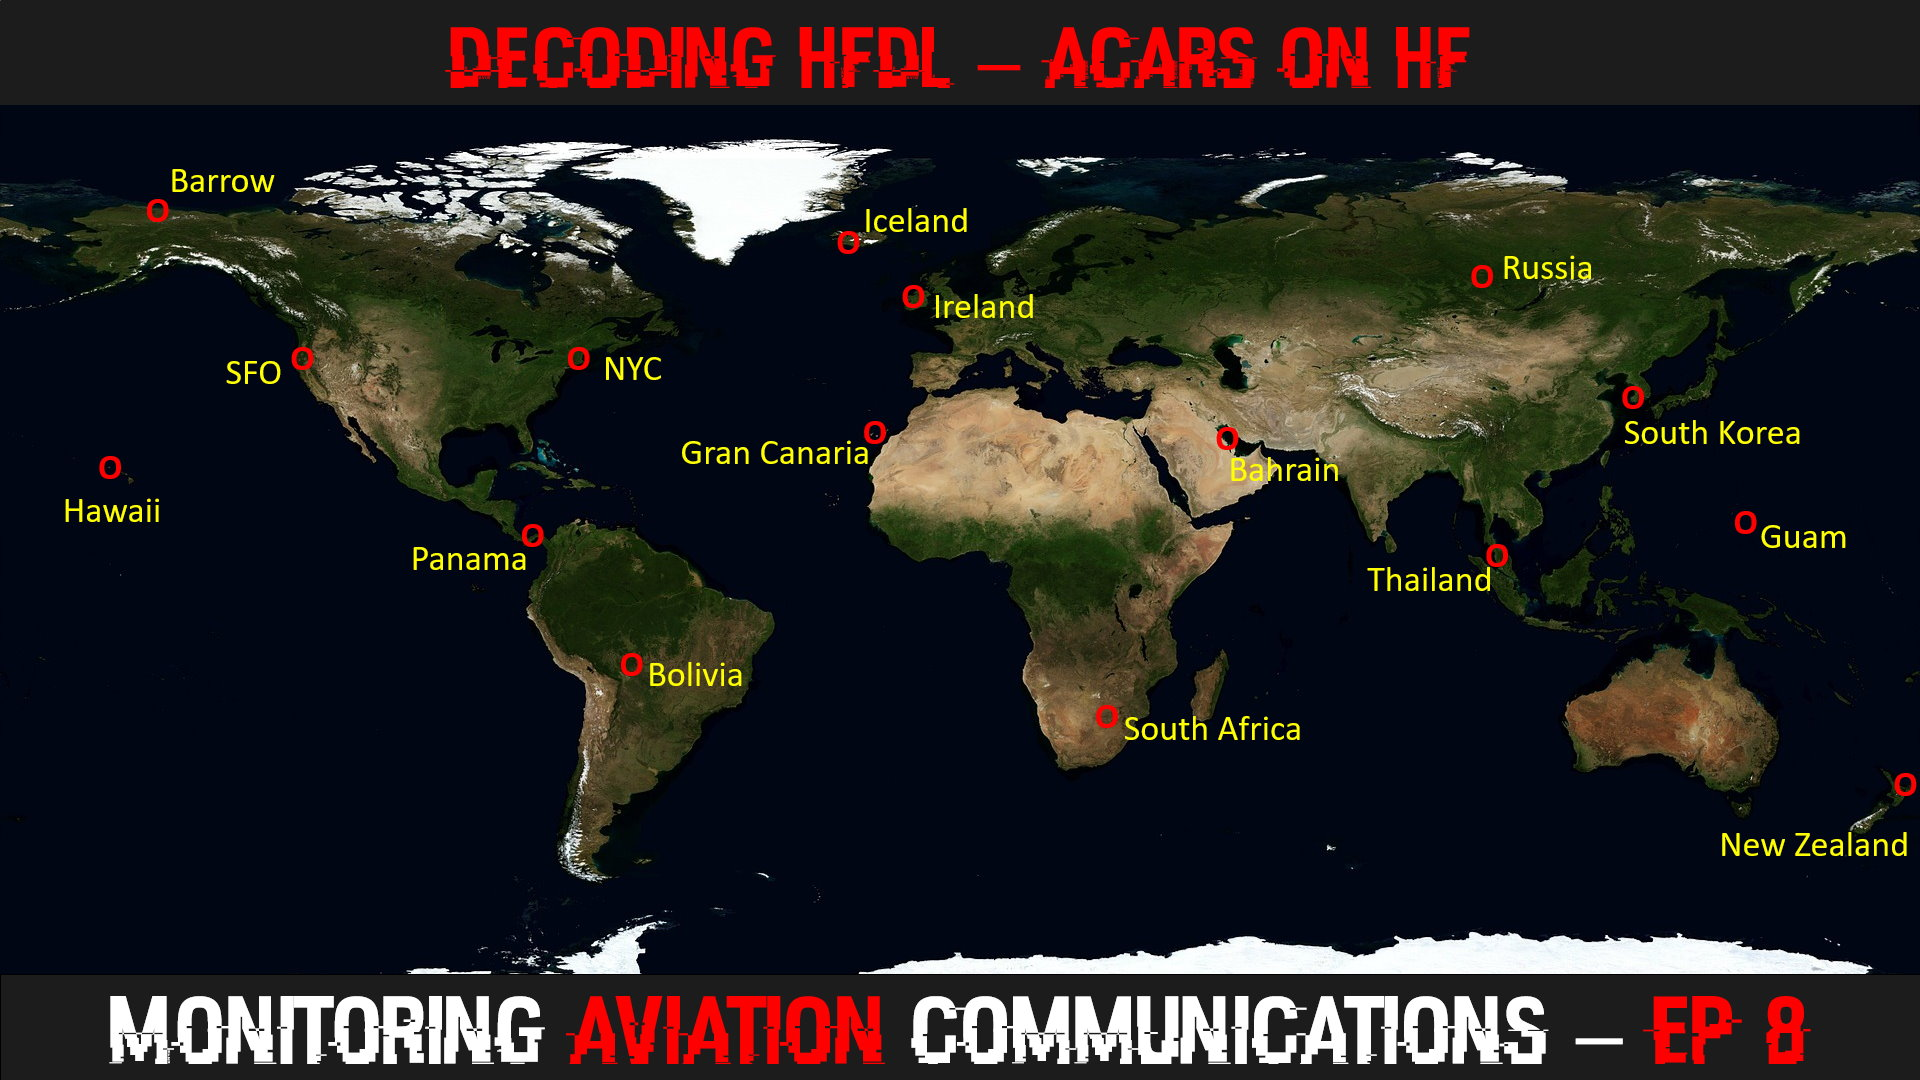 Map of HFDL Ground Stations used in the YouTube video of Decoding HFDL.